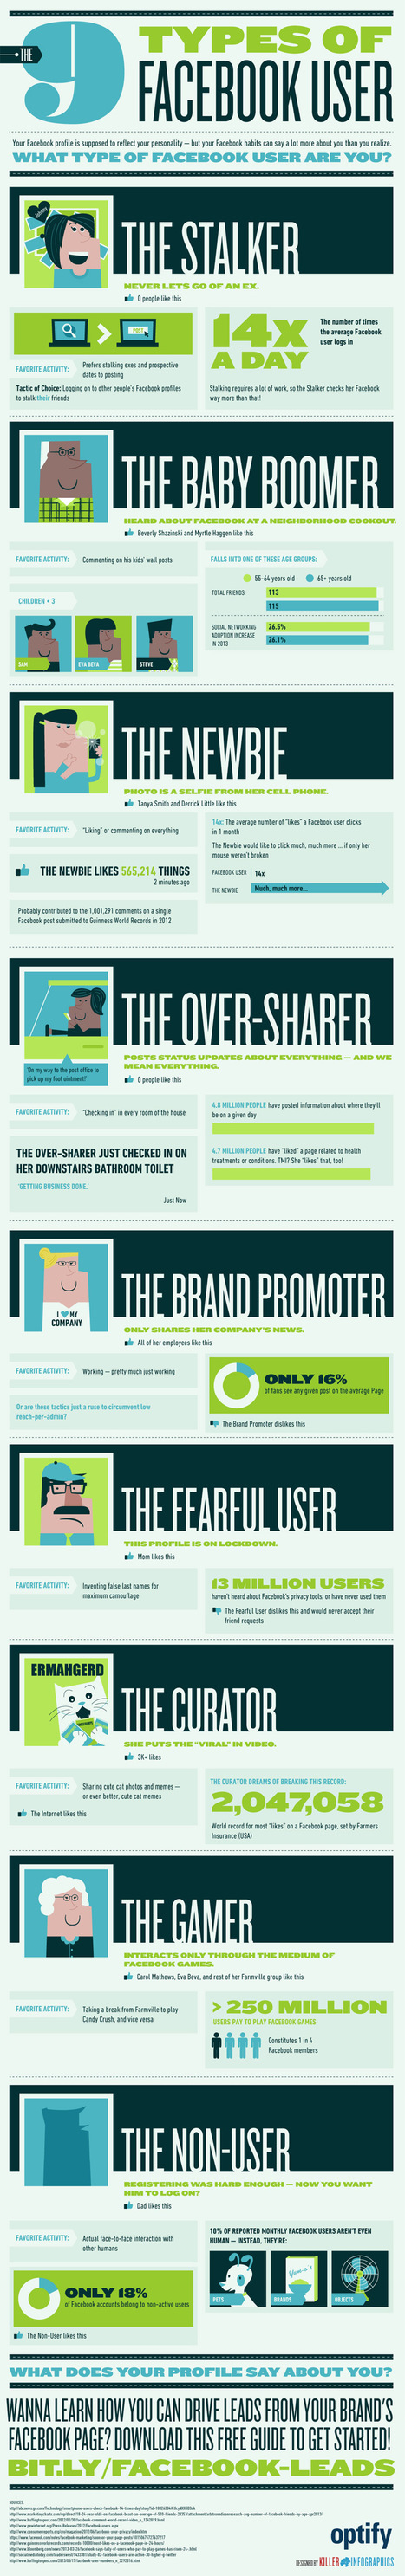 The 9 Types of Facebook User, what type are you? – an infographic /@BerriePelser | Social Media | Scoop.it